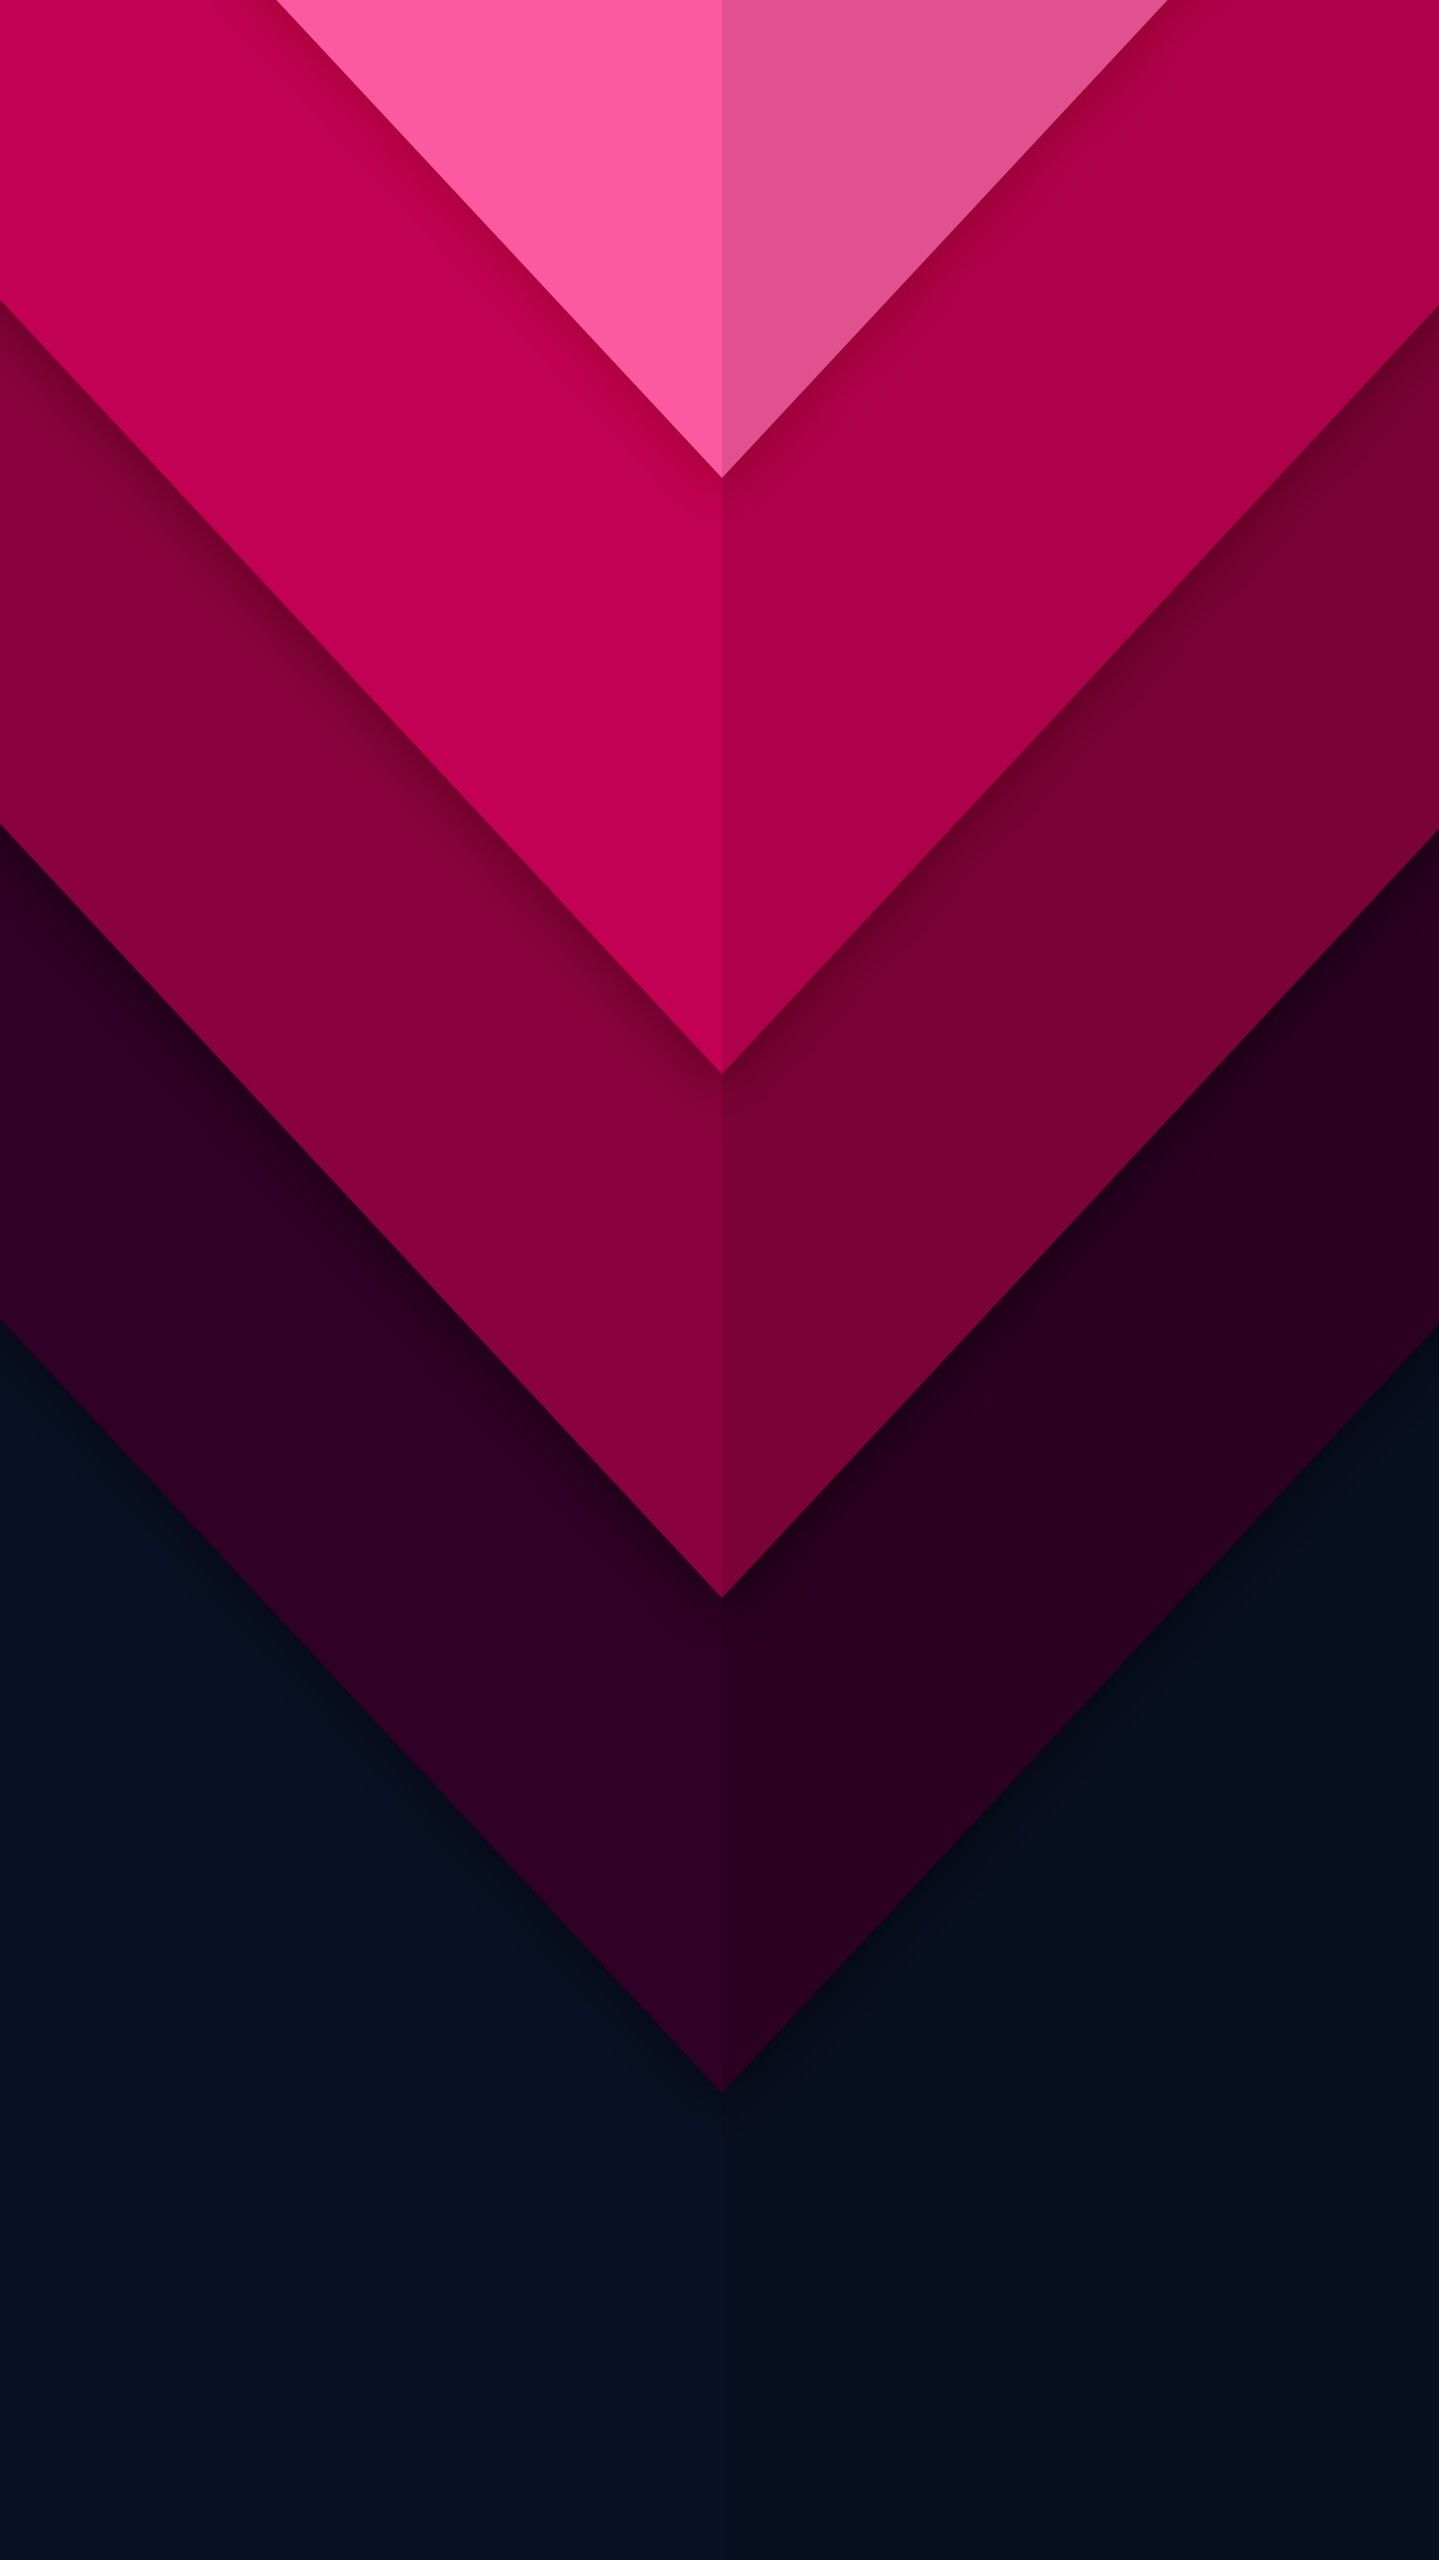 Chevron Gradient Abstract Wallpaper in 2019 Geometric